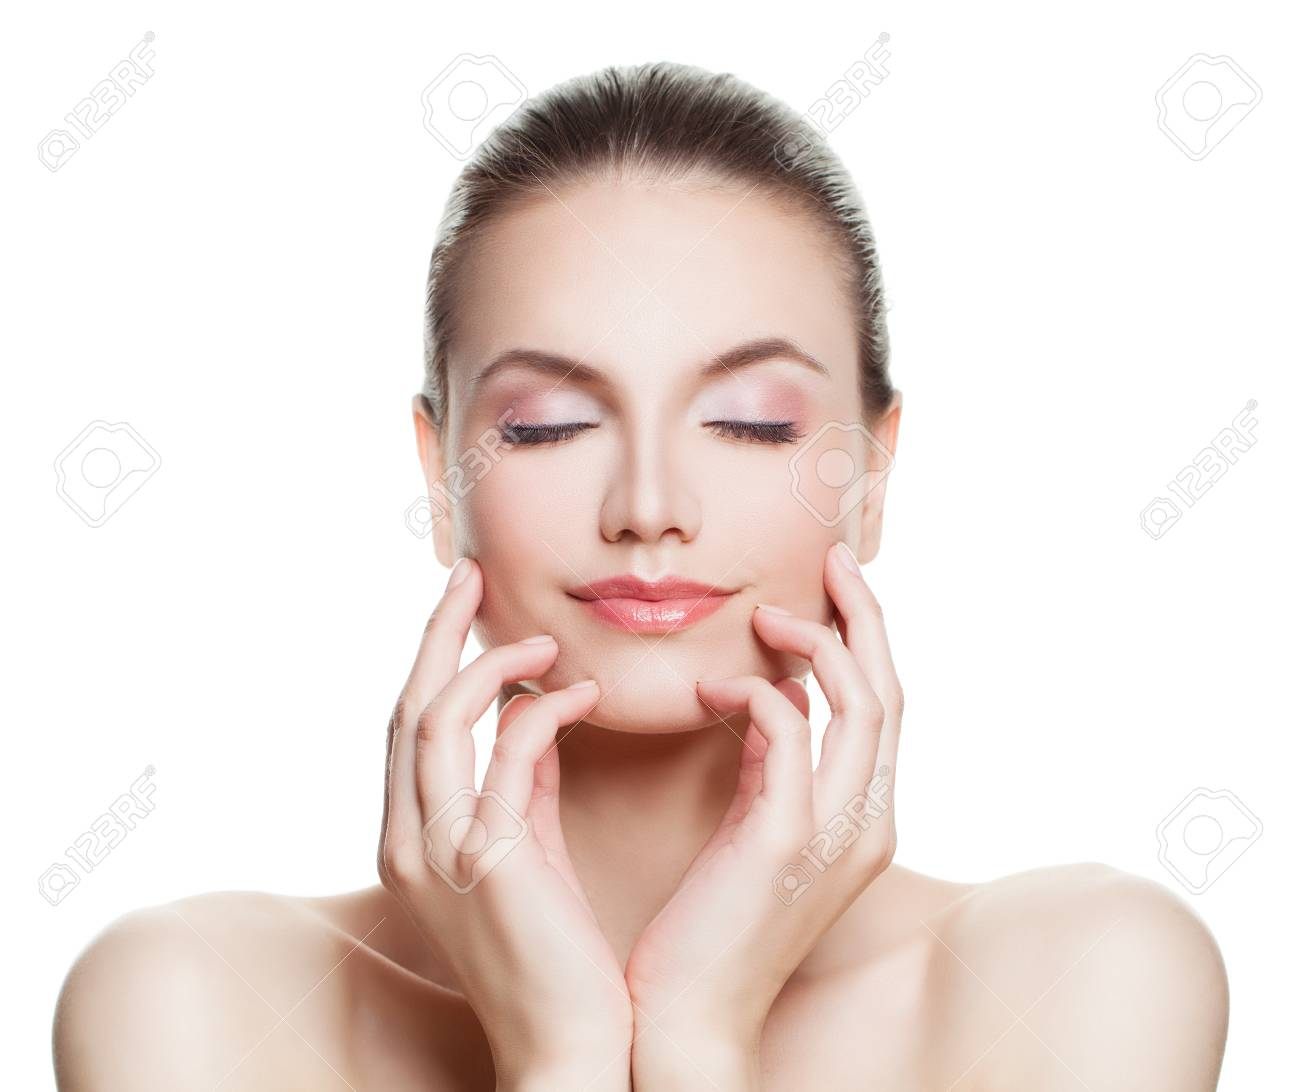 Beautiful Woman Spa Model With Nude Makeup Perfect Face Skincare Stock Photo Picture And Royalty Free Image Image 72066834